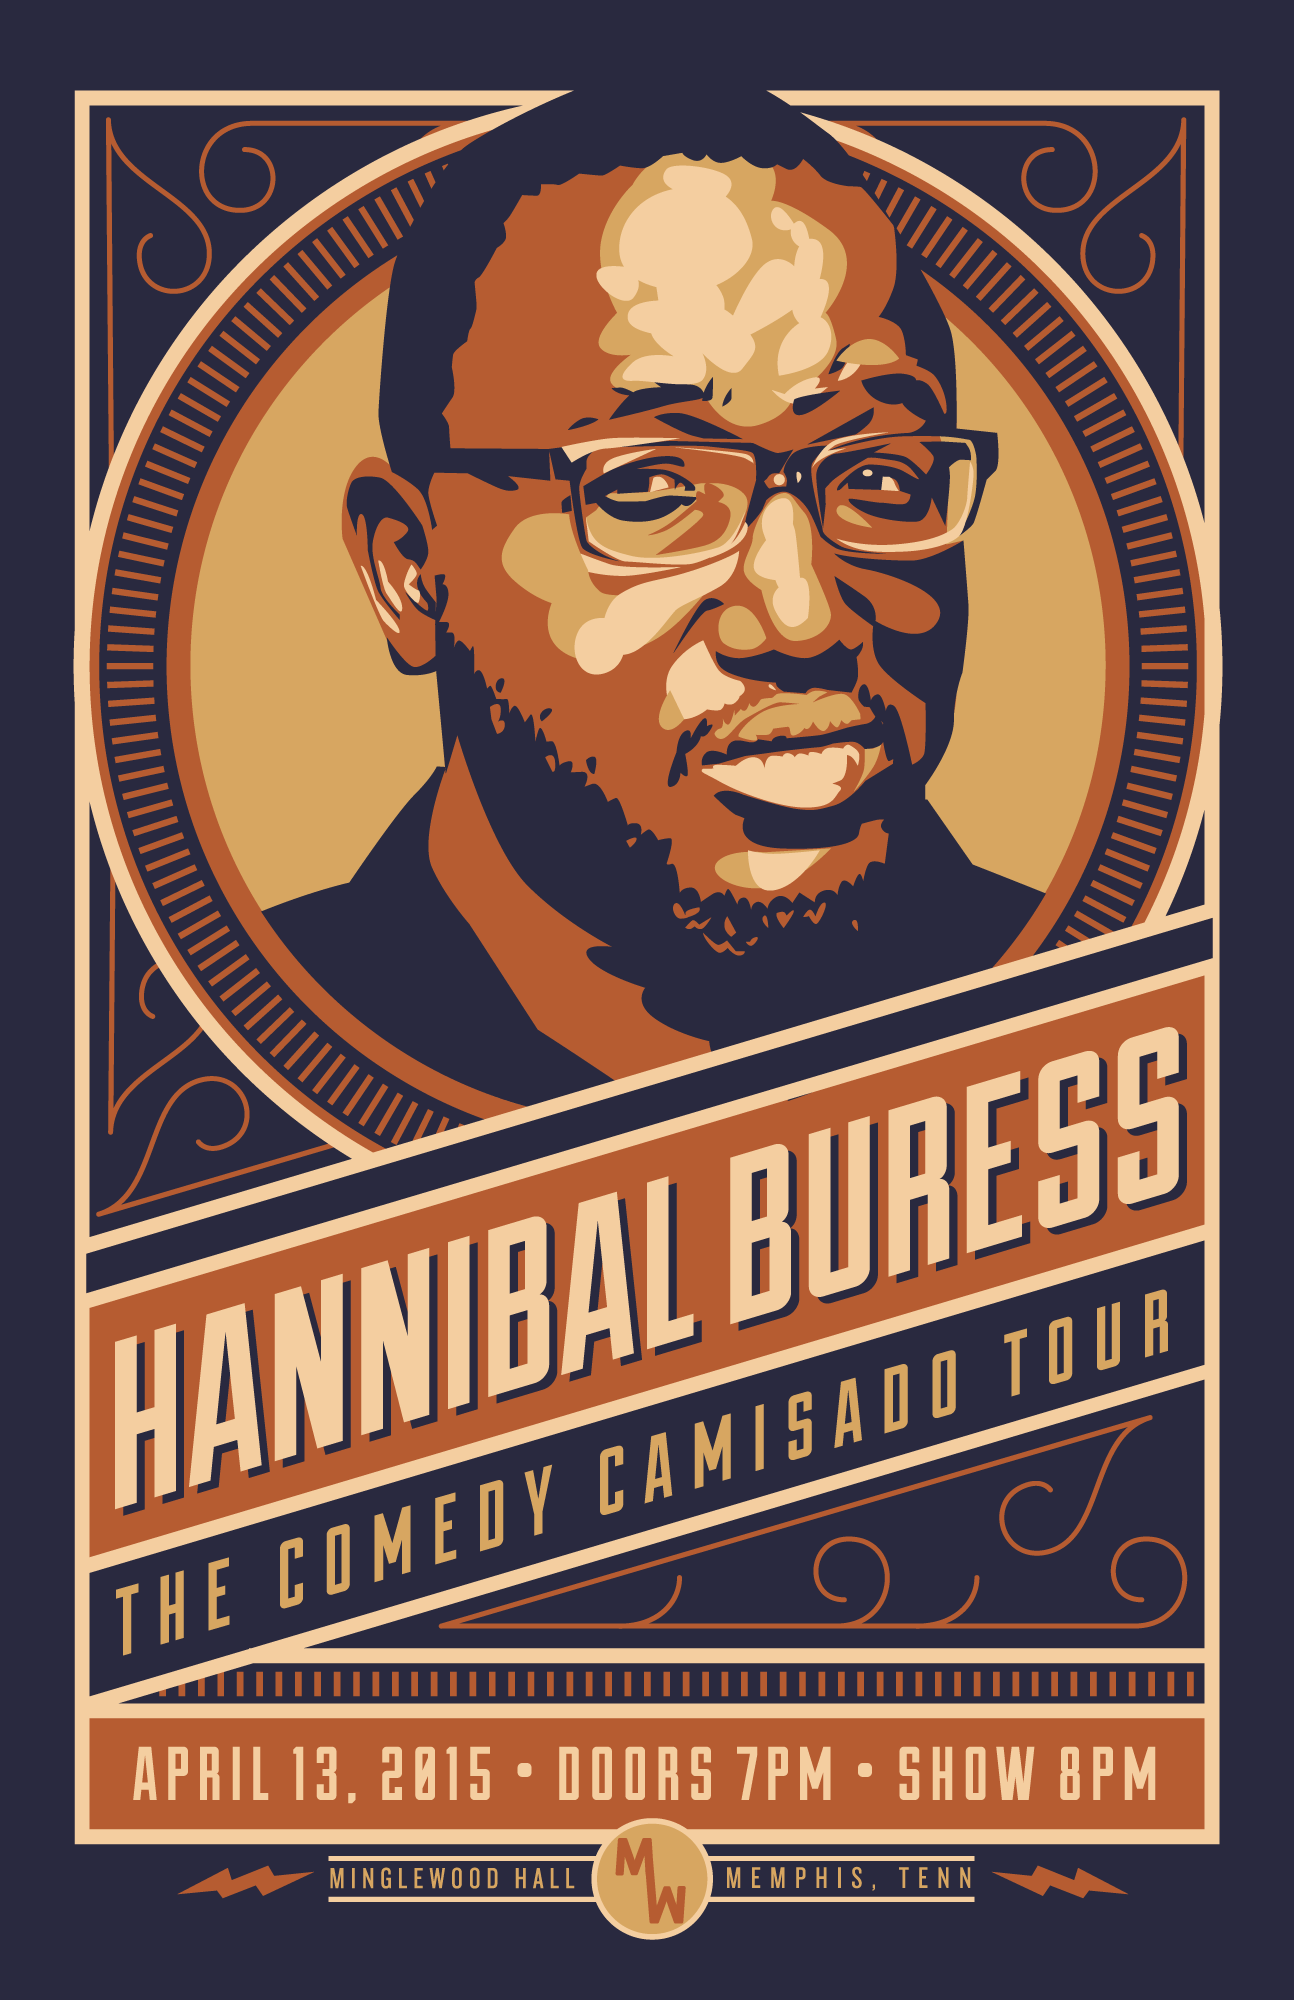 hannibal_buress-web.png